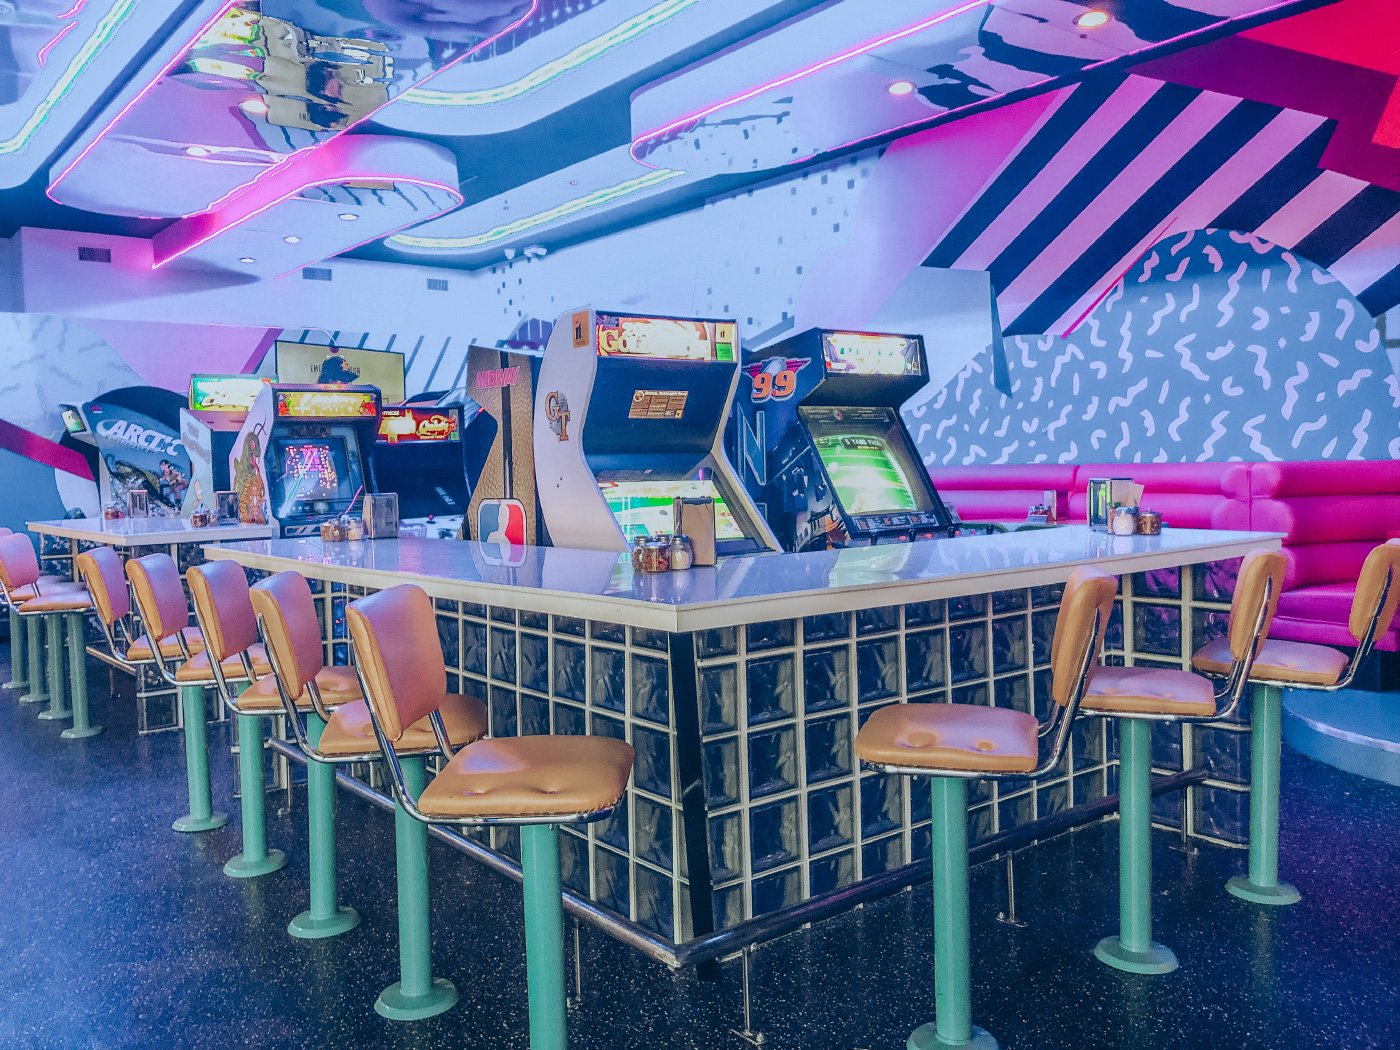 A neon-drenched pizza parlor